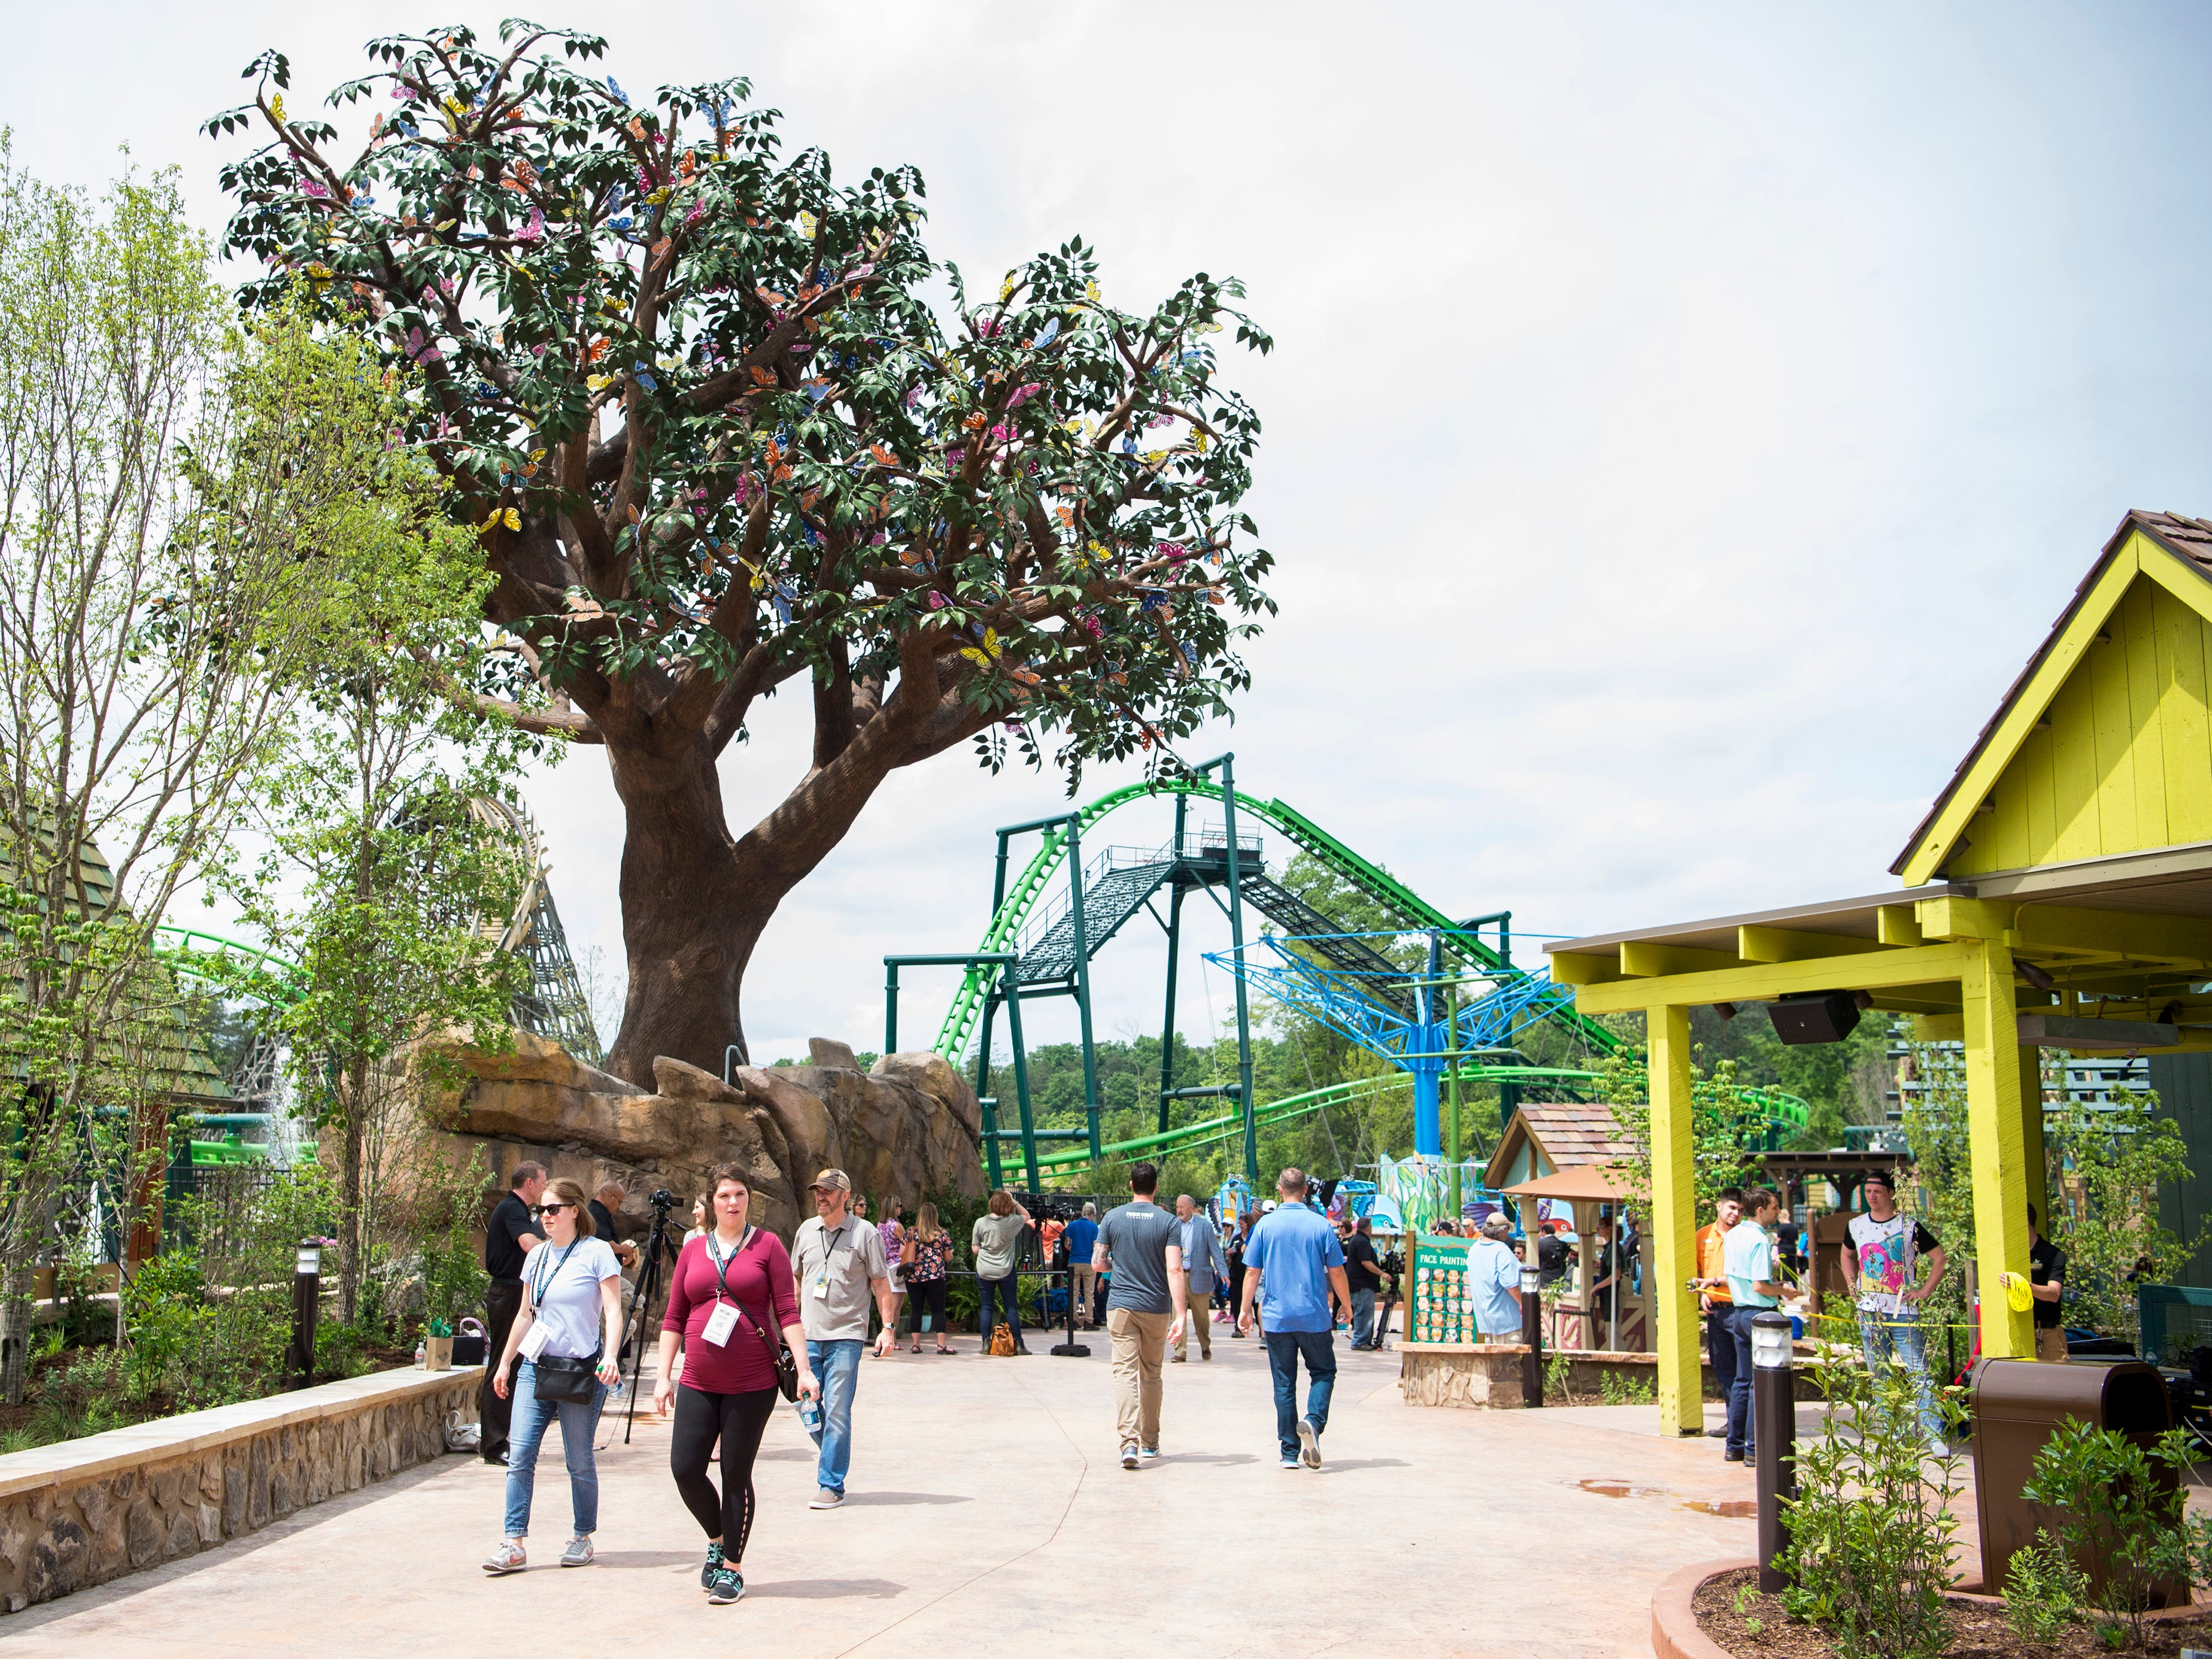 Guests enjoy Dollywood's new Wildwood Grove expansion on Friday, May 10, 2019.